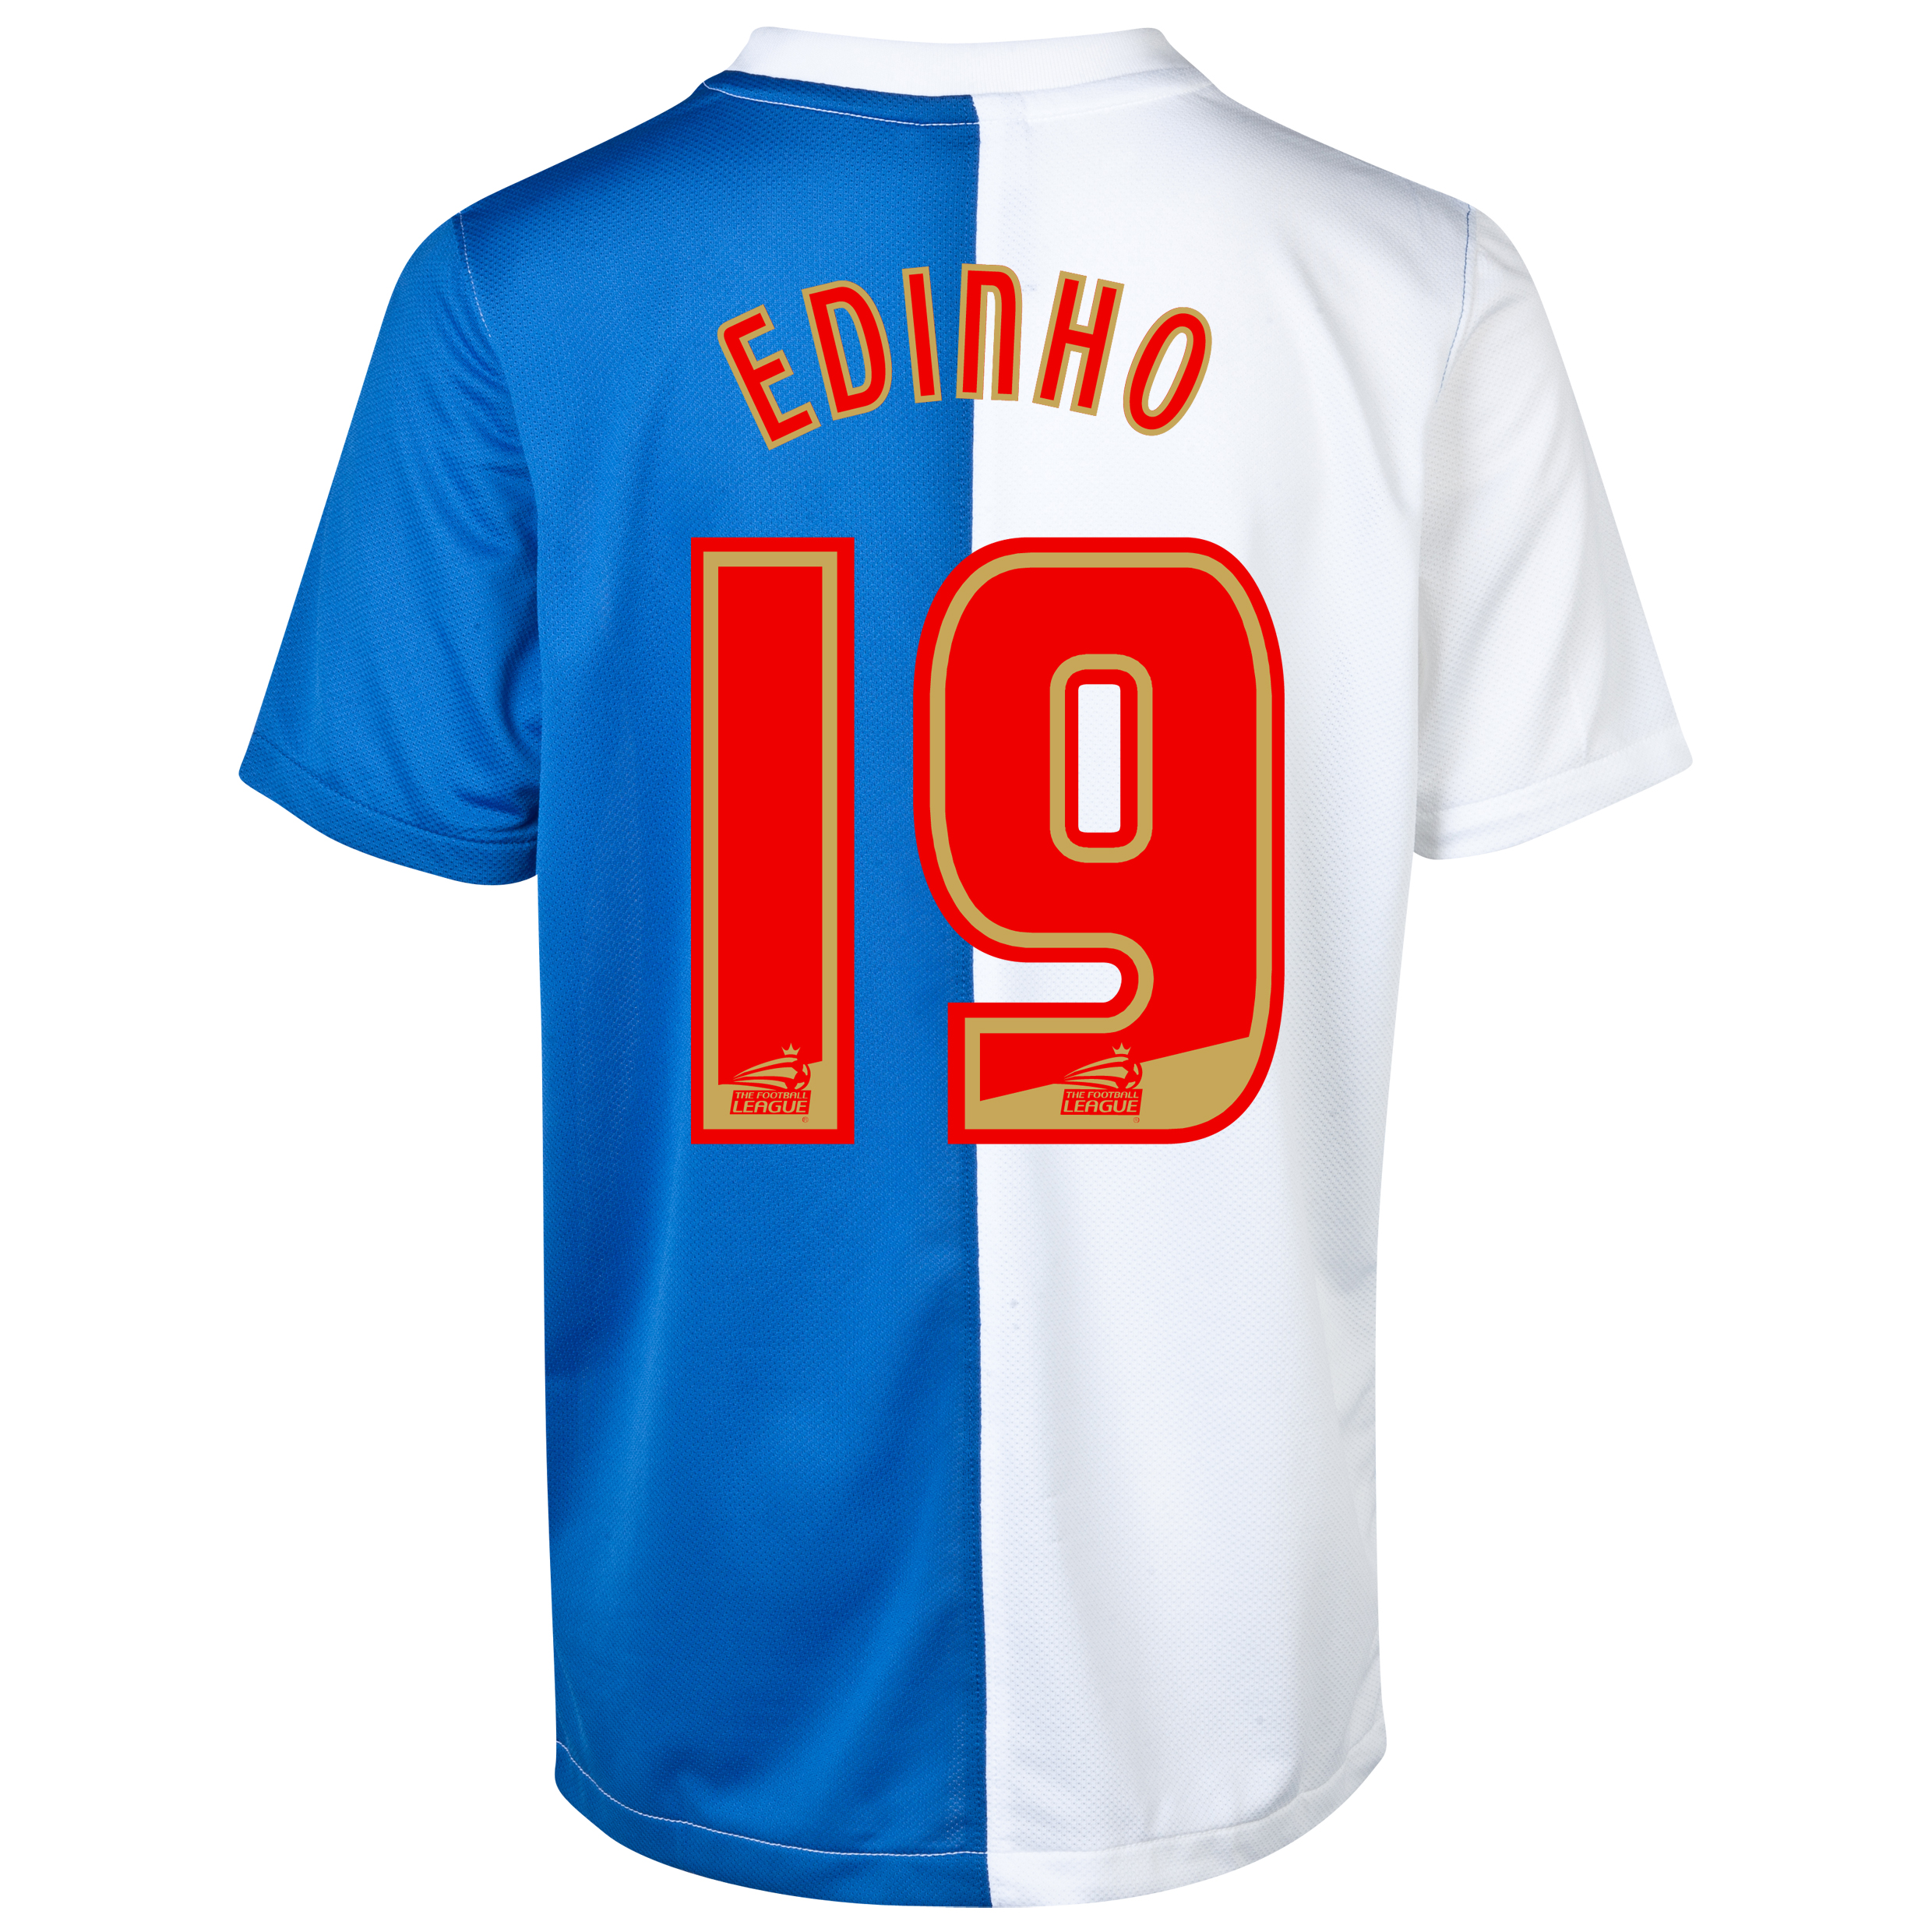 Blackburn Rovers Home Shirt 2013/14 with Edinho 19 printing